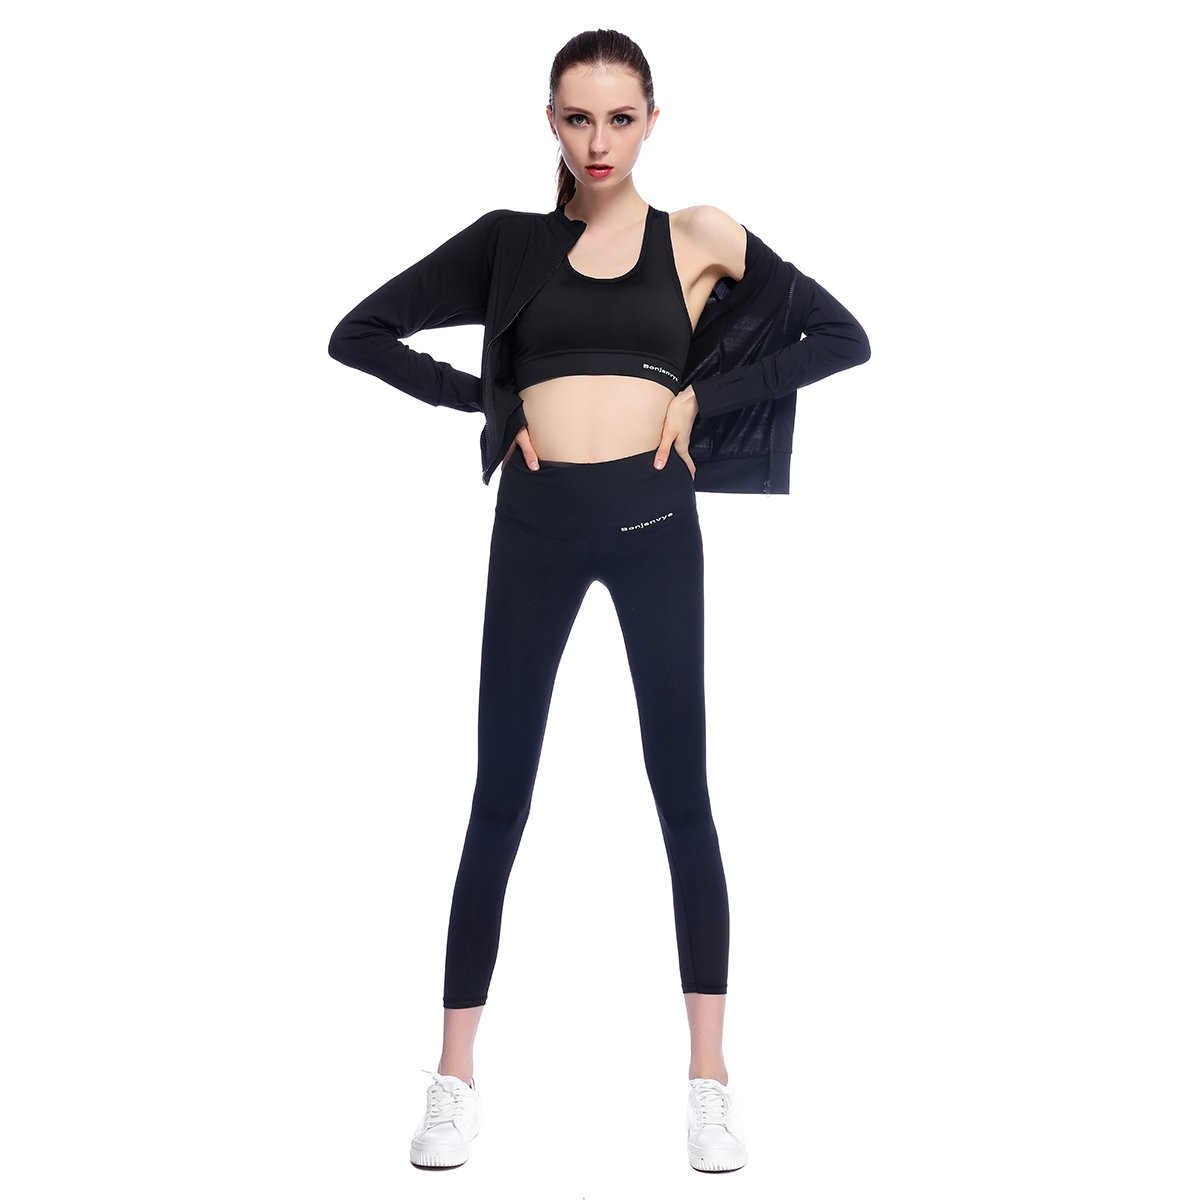 Bonjanvye Women's Yoga Suit 3 Piece Running Tracksuit Gym Fitness Outfit Workout Activewear Suit for Girls